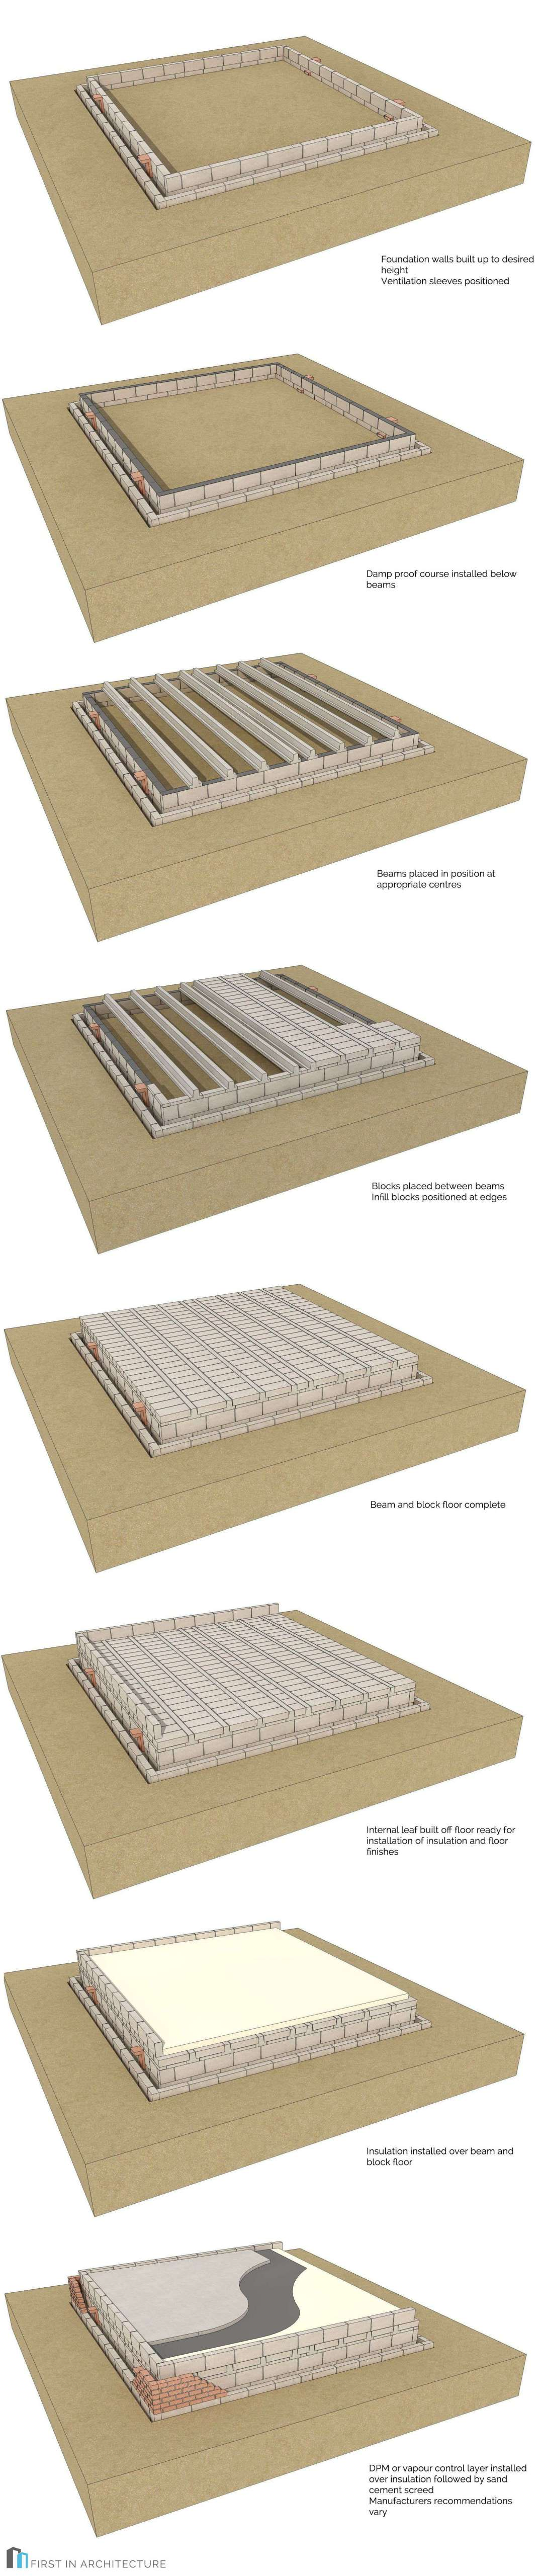 Introduction to Beam and Block Floors construction